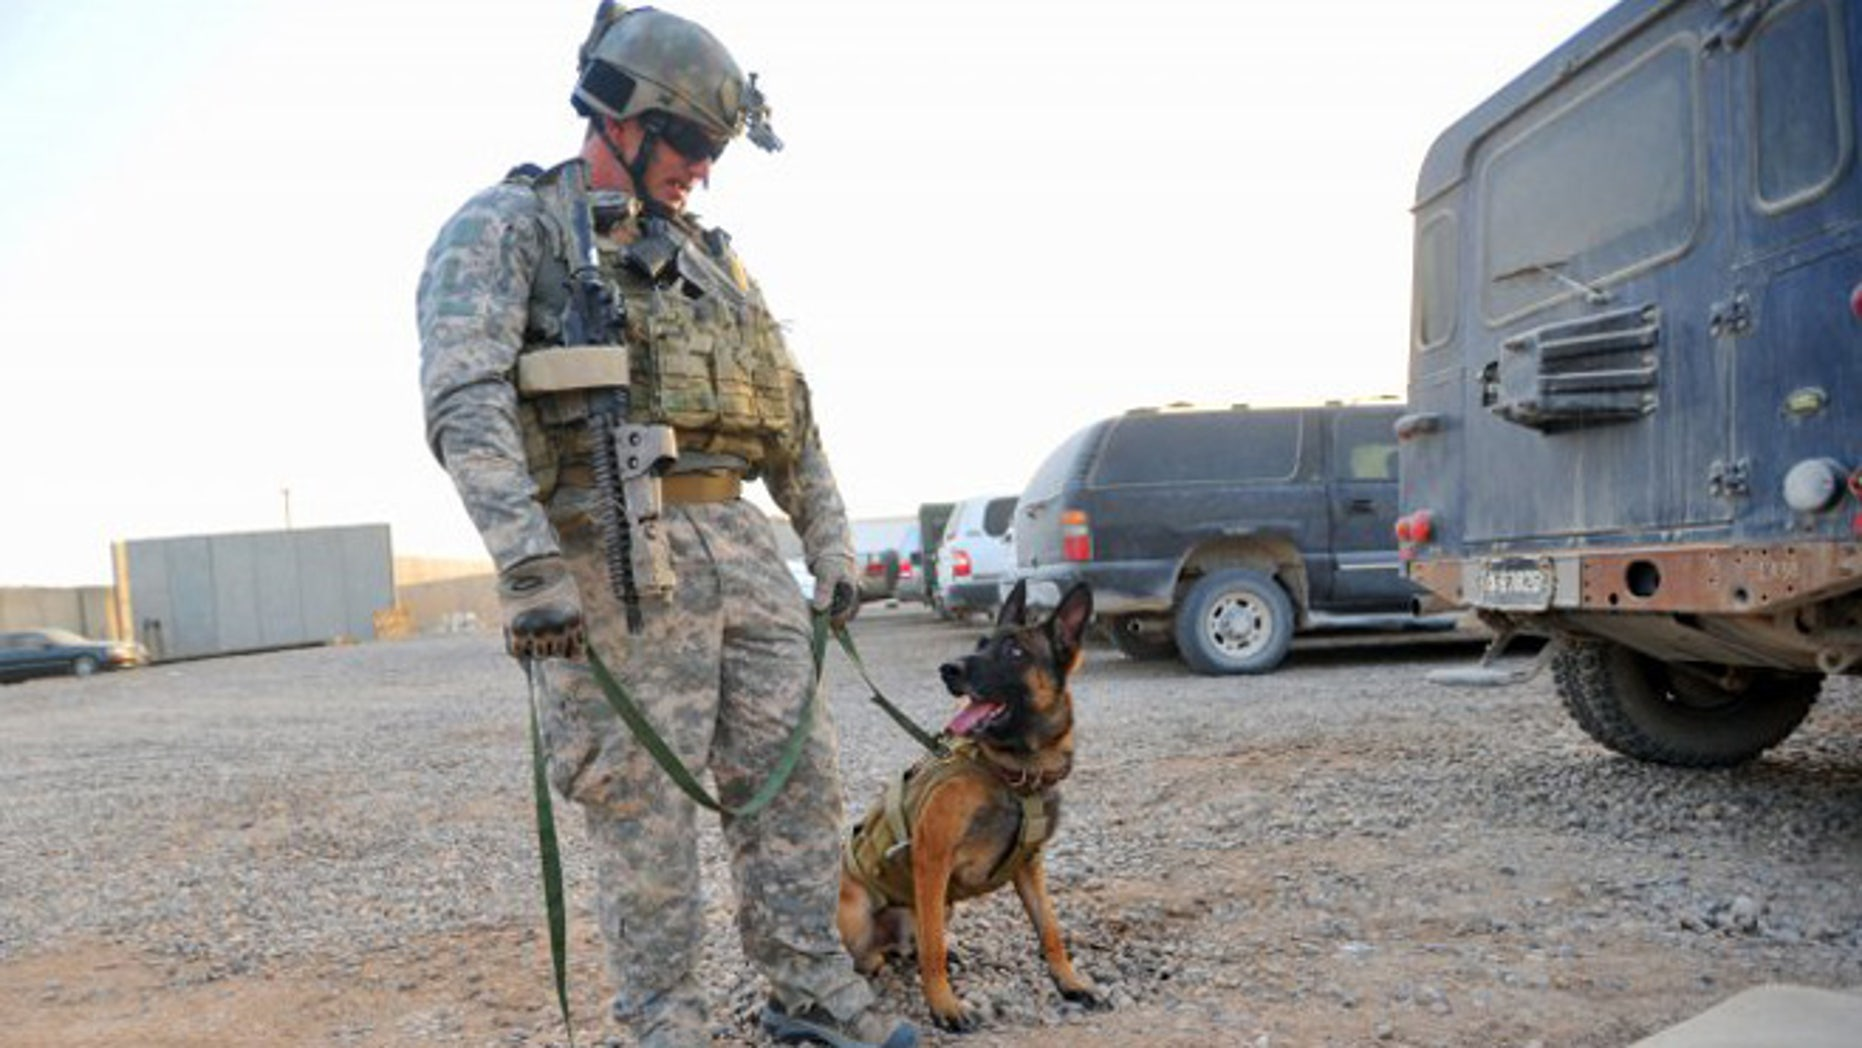 Retired Army Ranger Bessler and his multipurpose canine, Mike, were inseparable in Iraq.